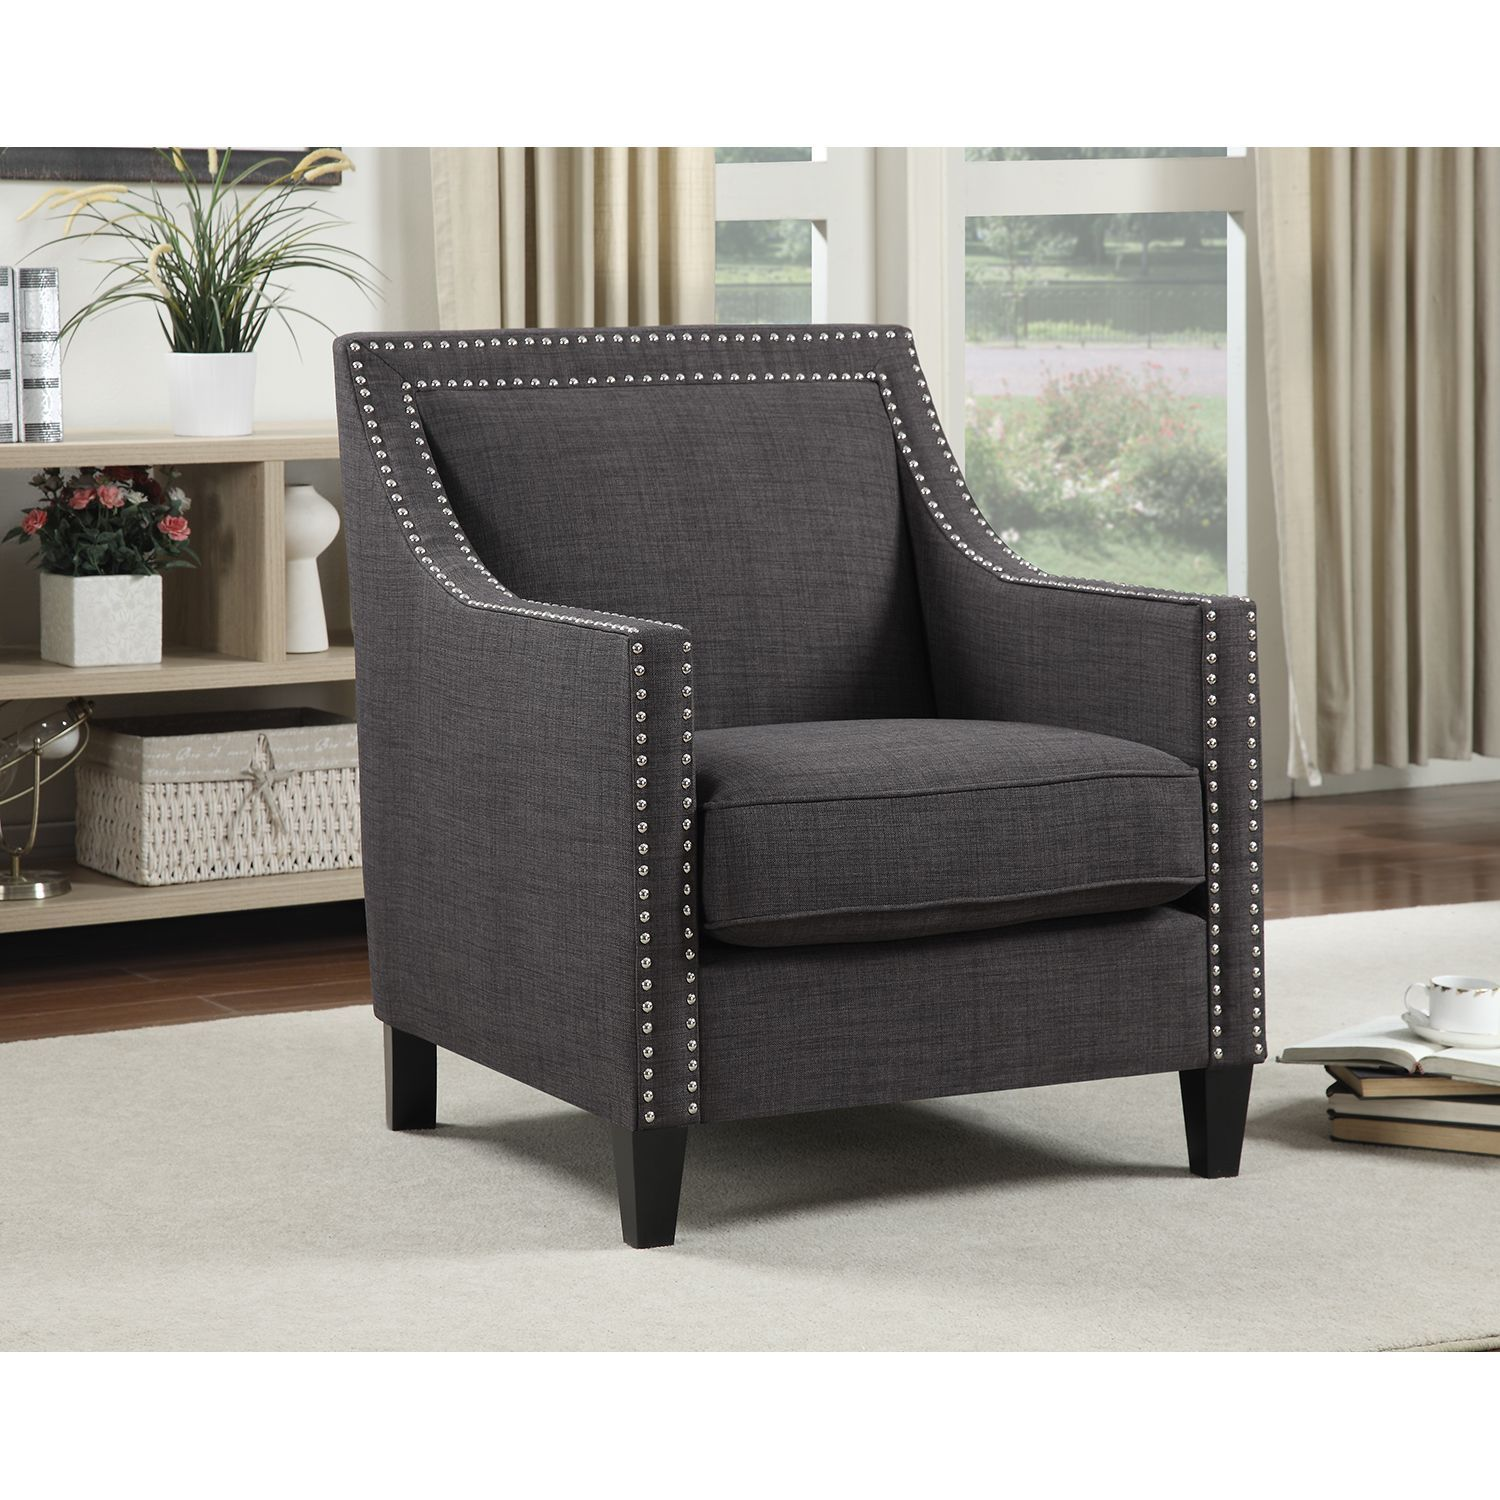 Sam S Club Upholstered Chairs Roman Chair Situps Emery Assorted Colors Housewarming Pinterest Buy Living Room At Samsclub Com